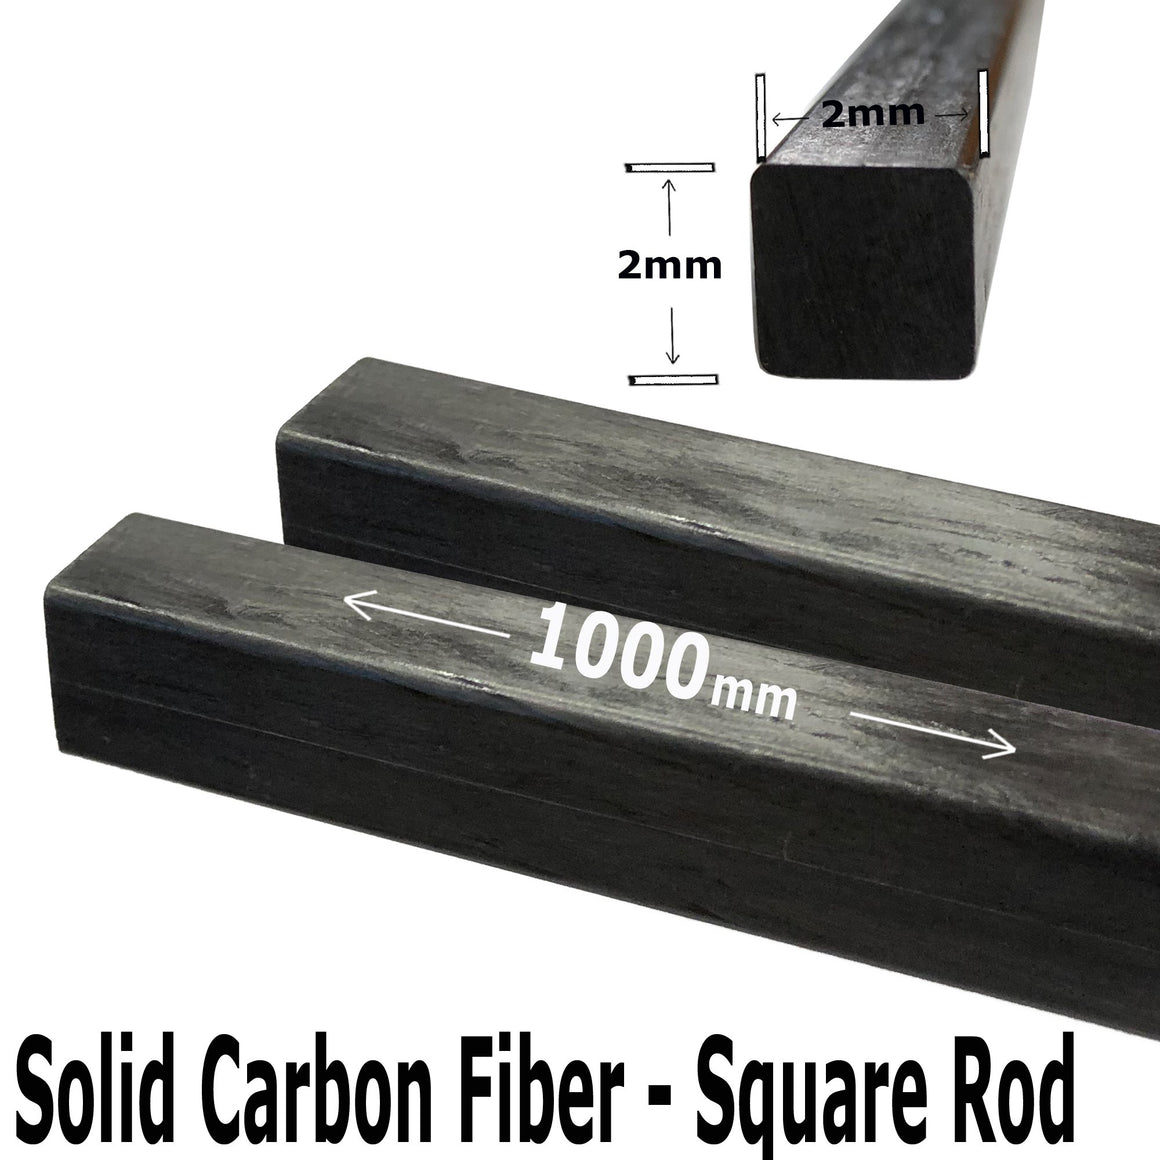 (1) 2mm X 1000mm - PULTRUDED-Square Carbon Fiber Rod. 100% Pultruded high Strength Carbon Fiber. Used for Drones, Radio Controlled Vehicles. Projects requiring high Strength to Weight Components.